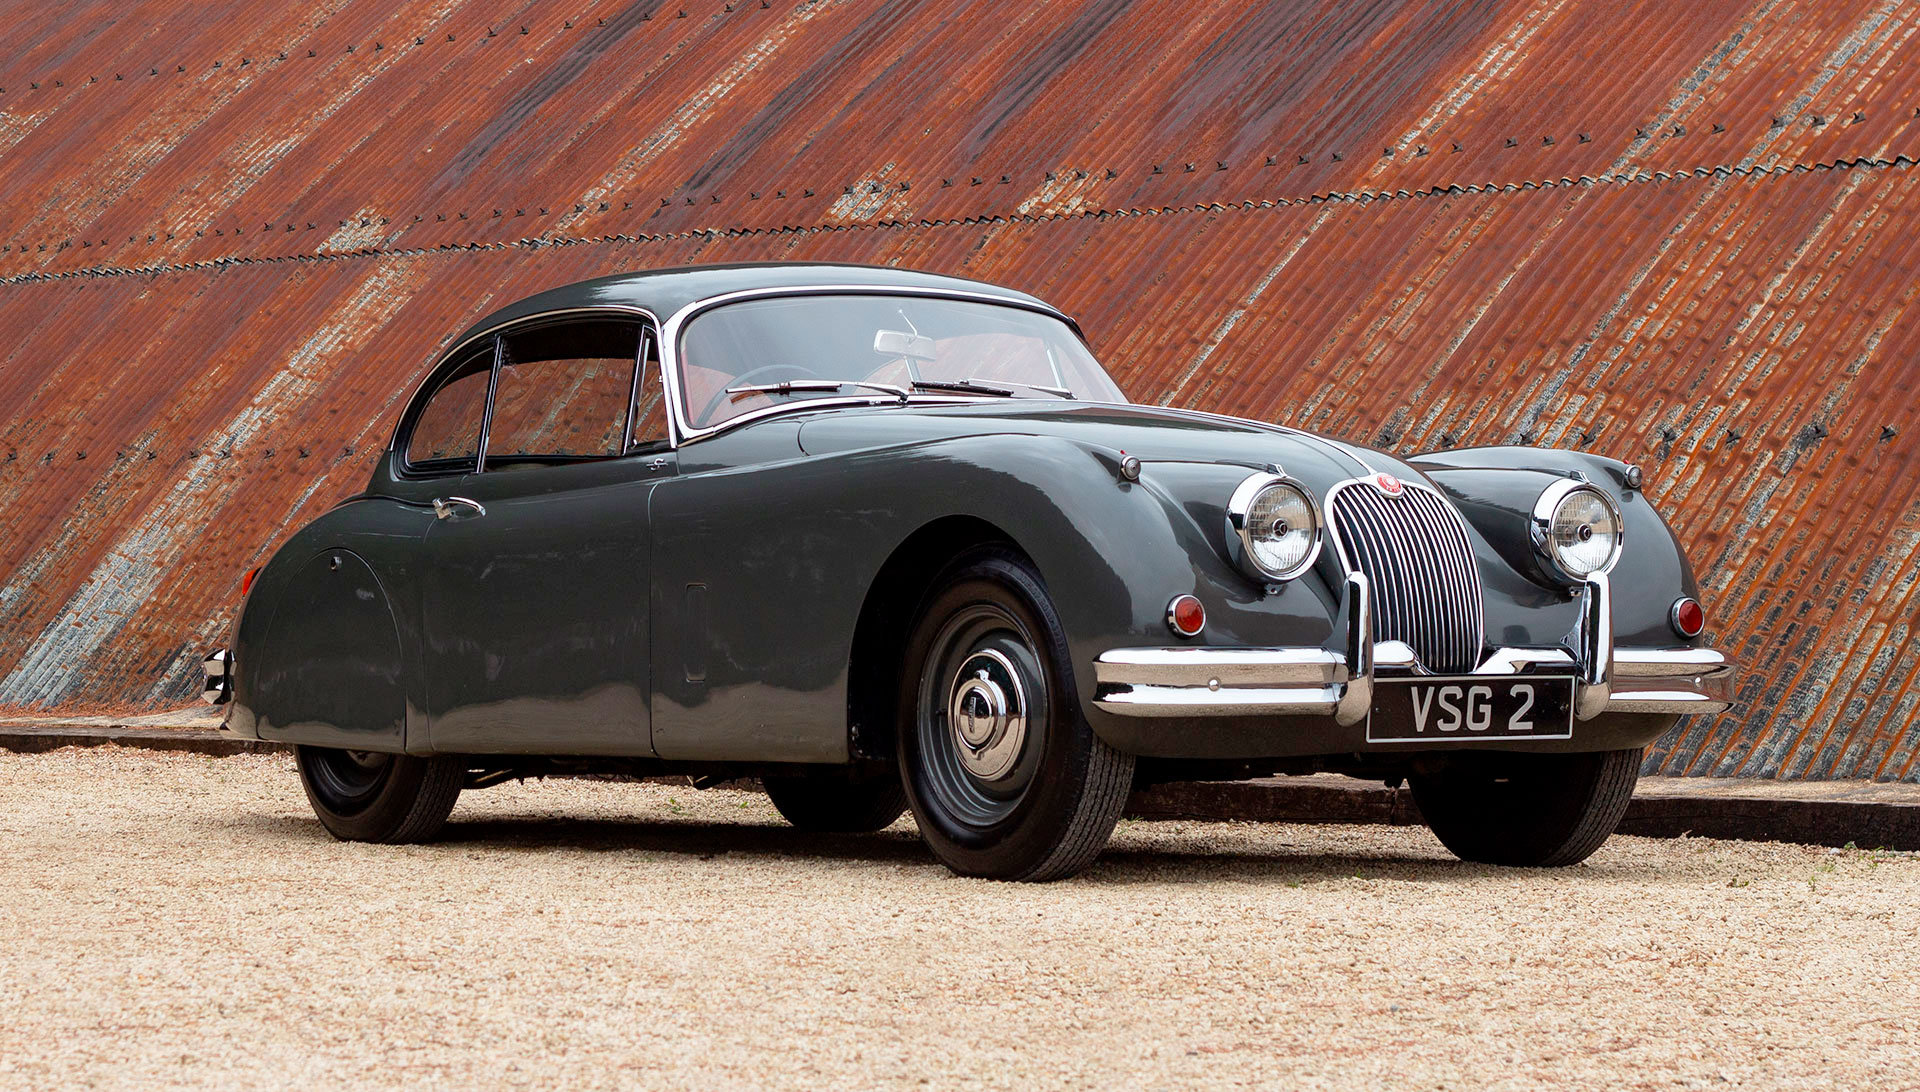 1960 JAGUAR XK150 'S' 3.8 LITRE COUPE for sale at The Classic Motor Hub